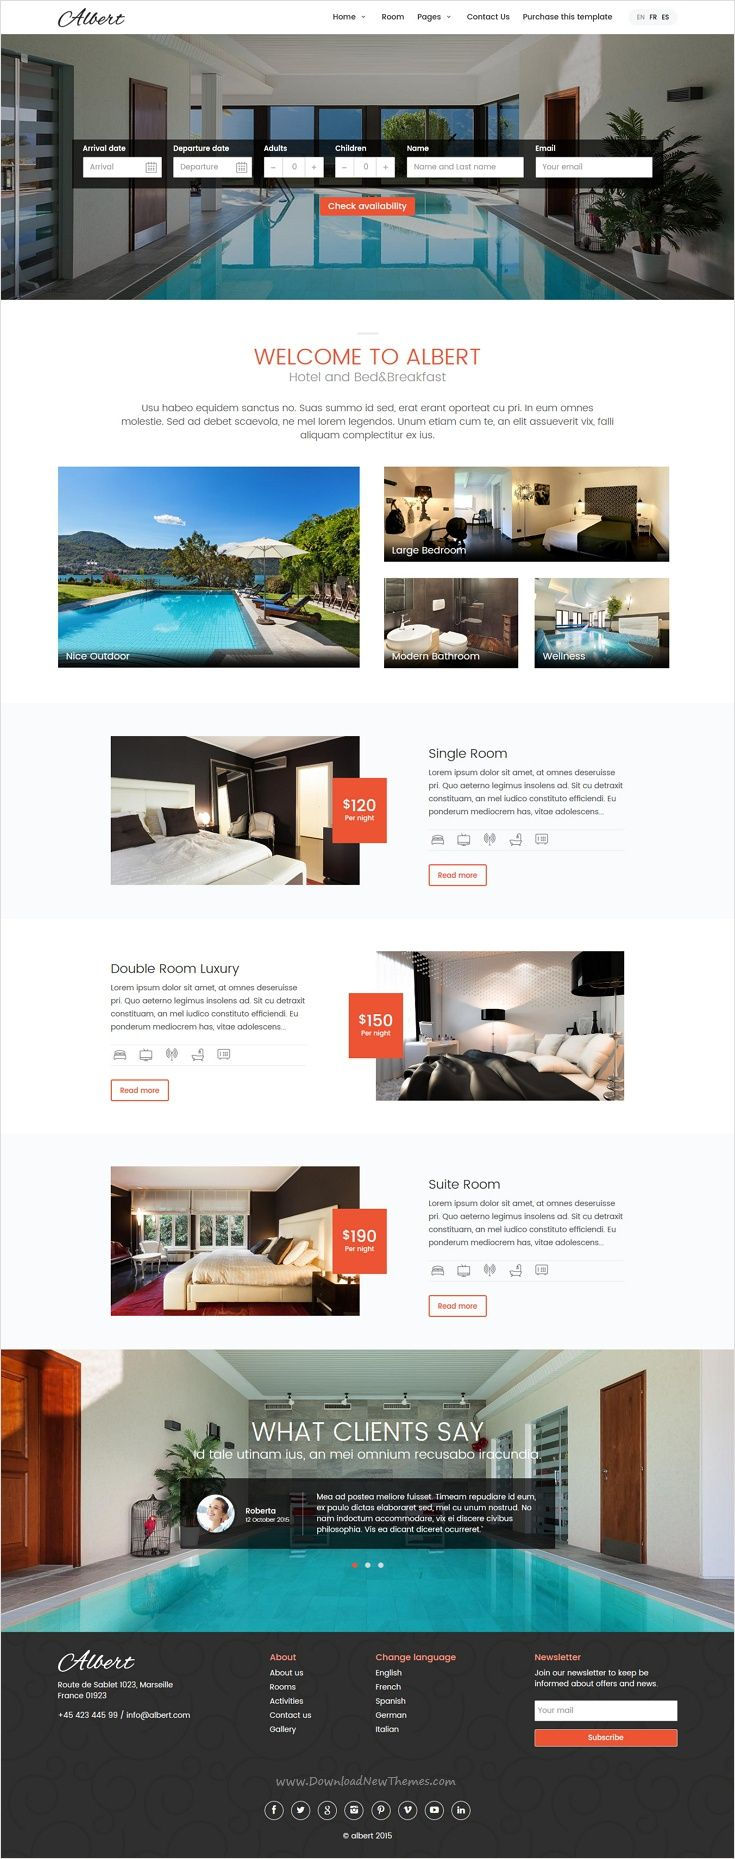 Albert is wonderful responsive 6 in 1 #WordPress #theme suitable for #hotels, accommodations and resorts website download now➩ https://themeforest.net/item/albert-hotel-and-bedbreakfast-wordpress-theme/16889431?ref=Datasata